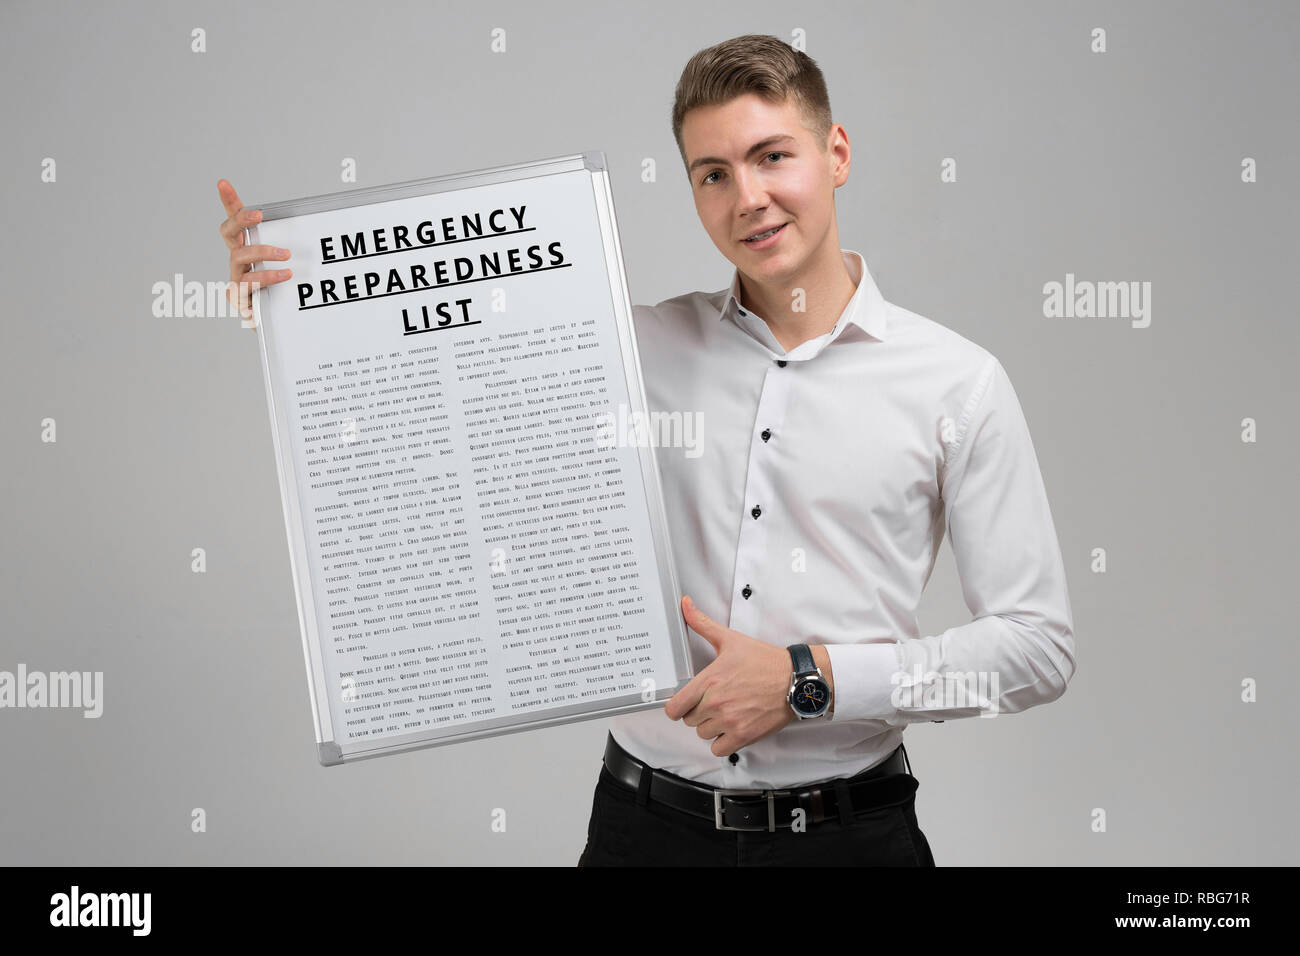 Young man holding a list of Emergency preparedness isolated on a light background - Stock Image